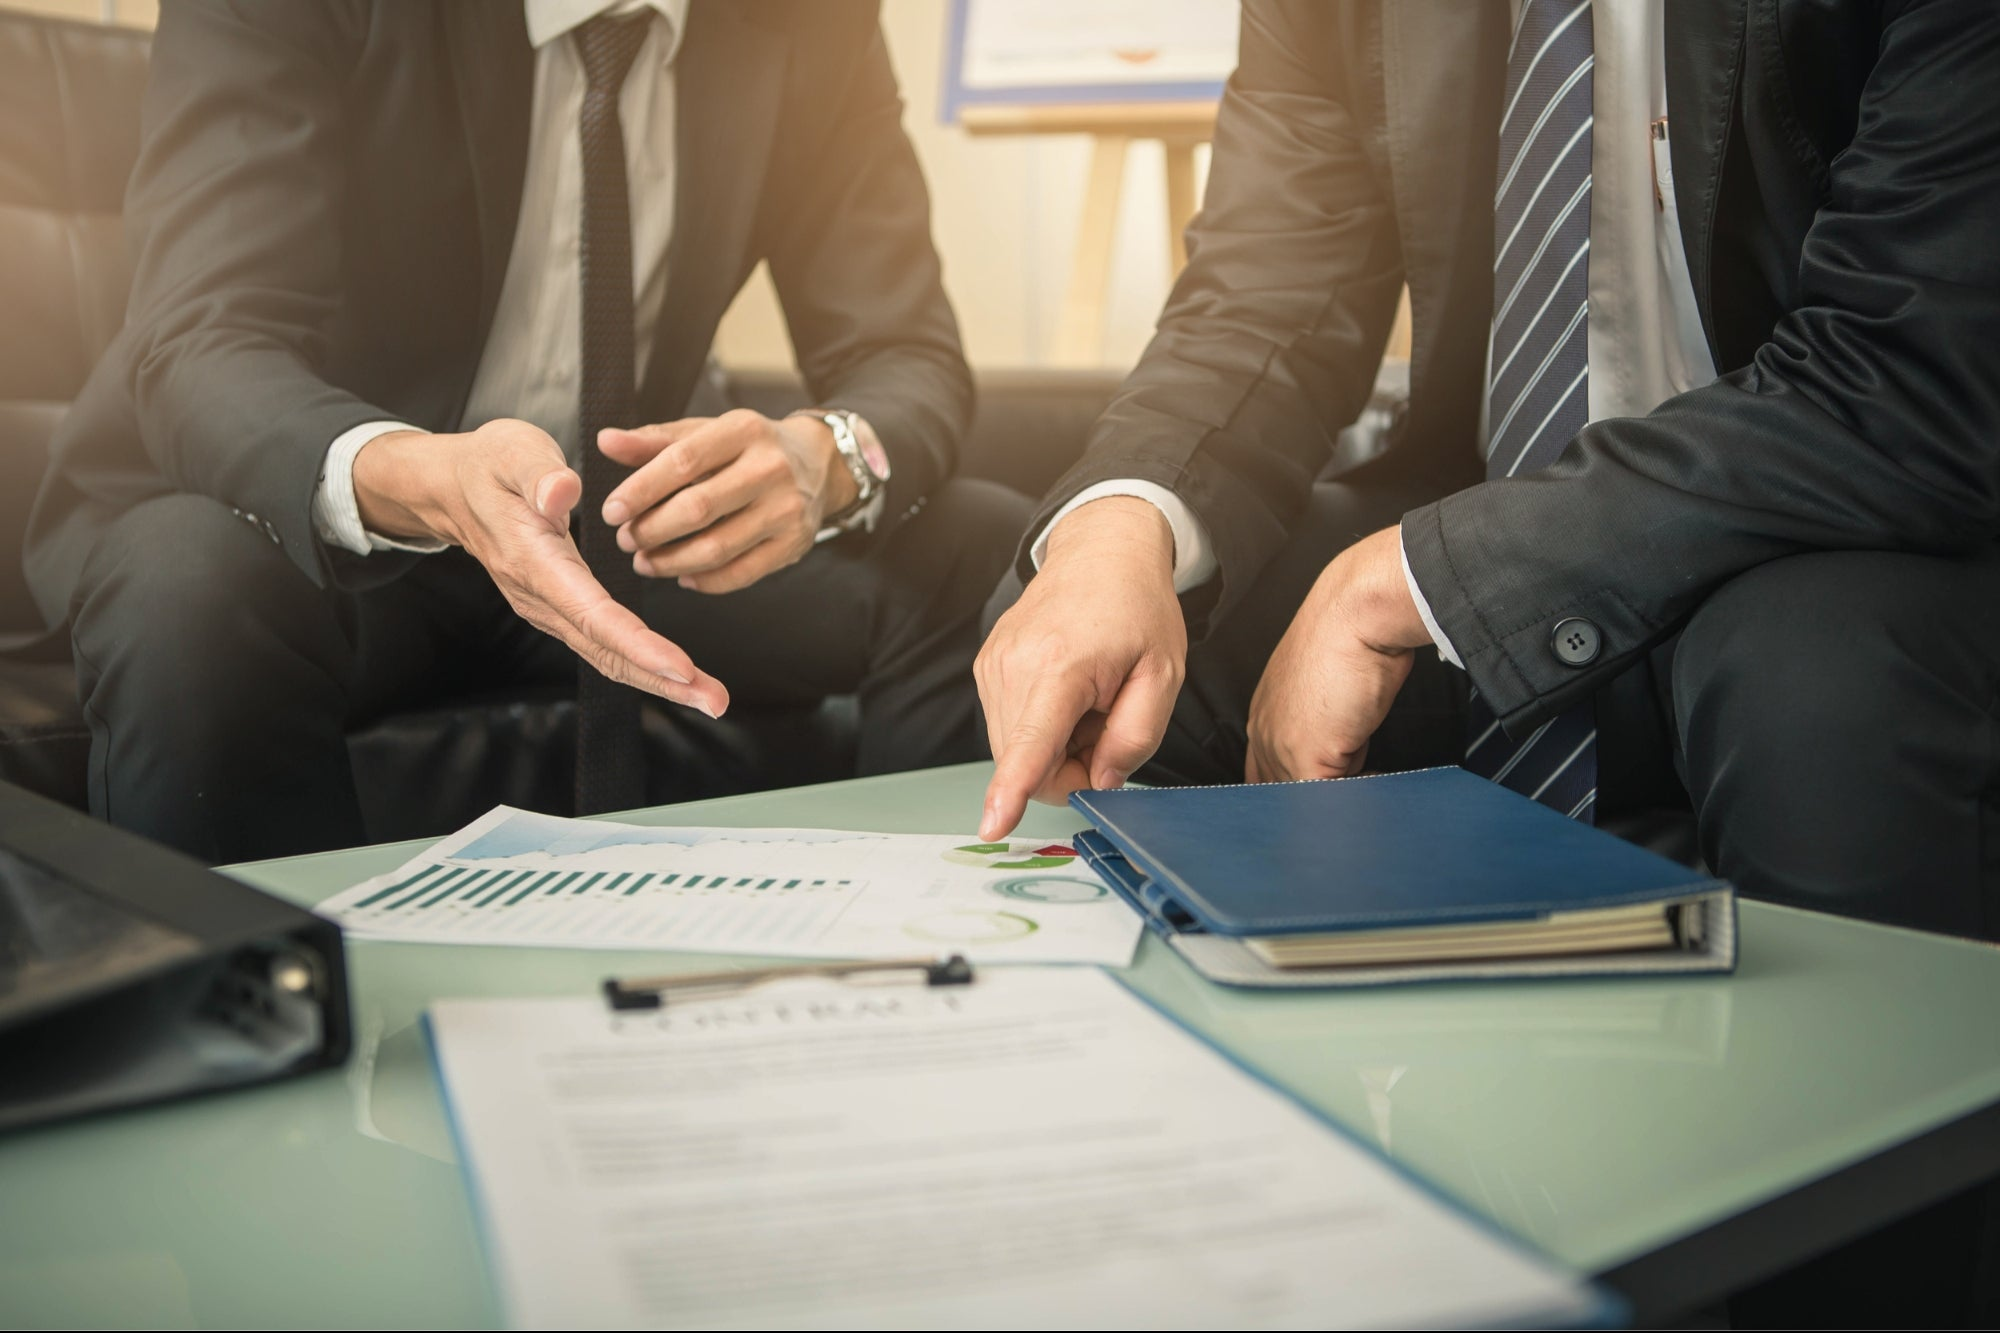 Ask a Startup Lawyer: Understanding Your BATNA (Best Alternative to a Negotiated Agreement)